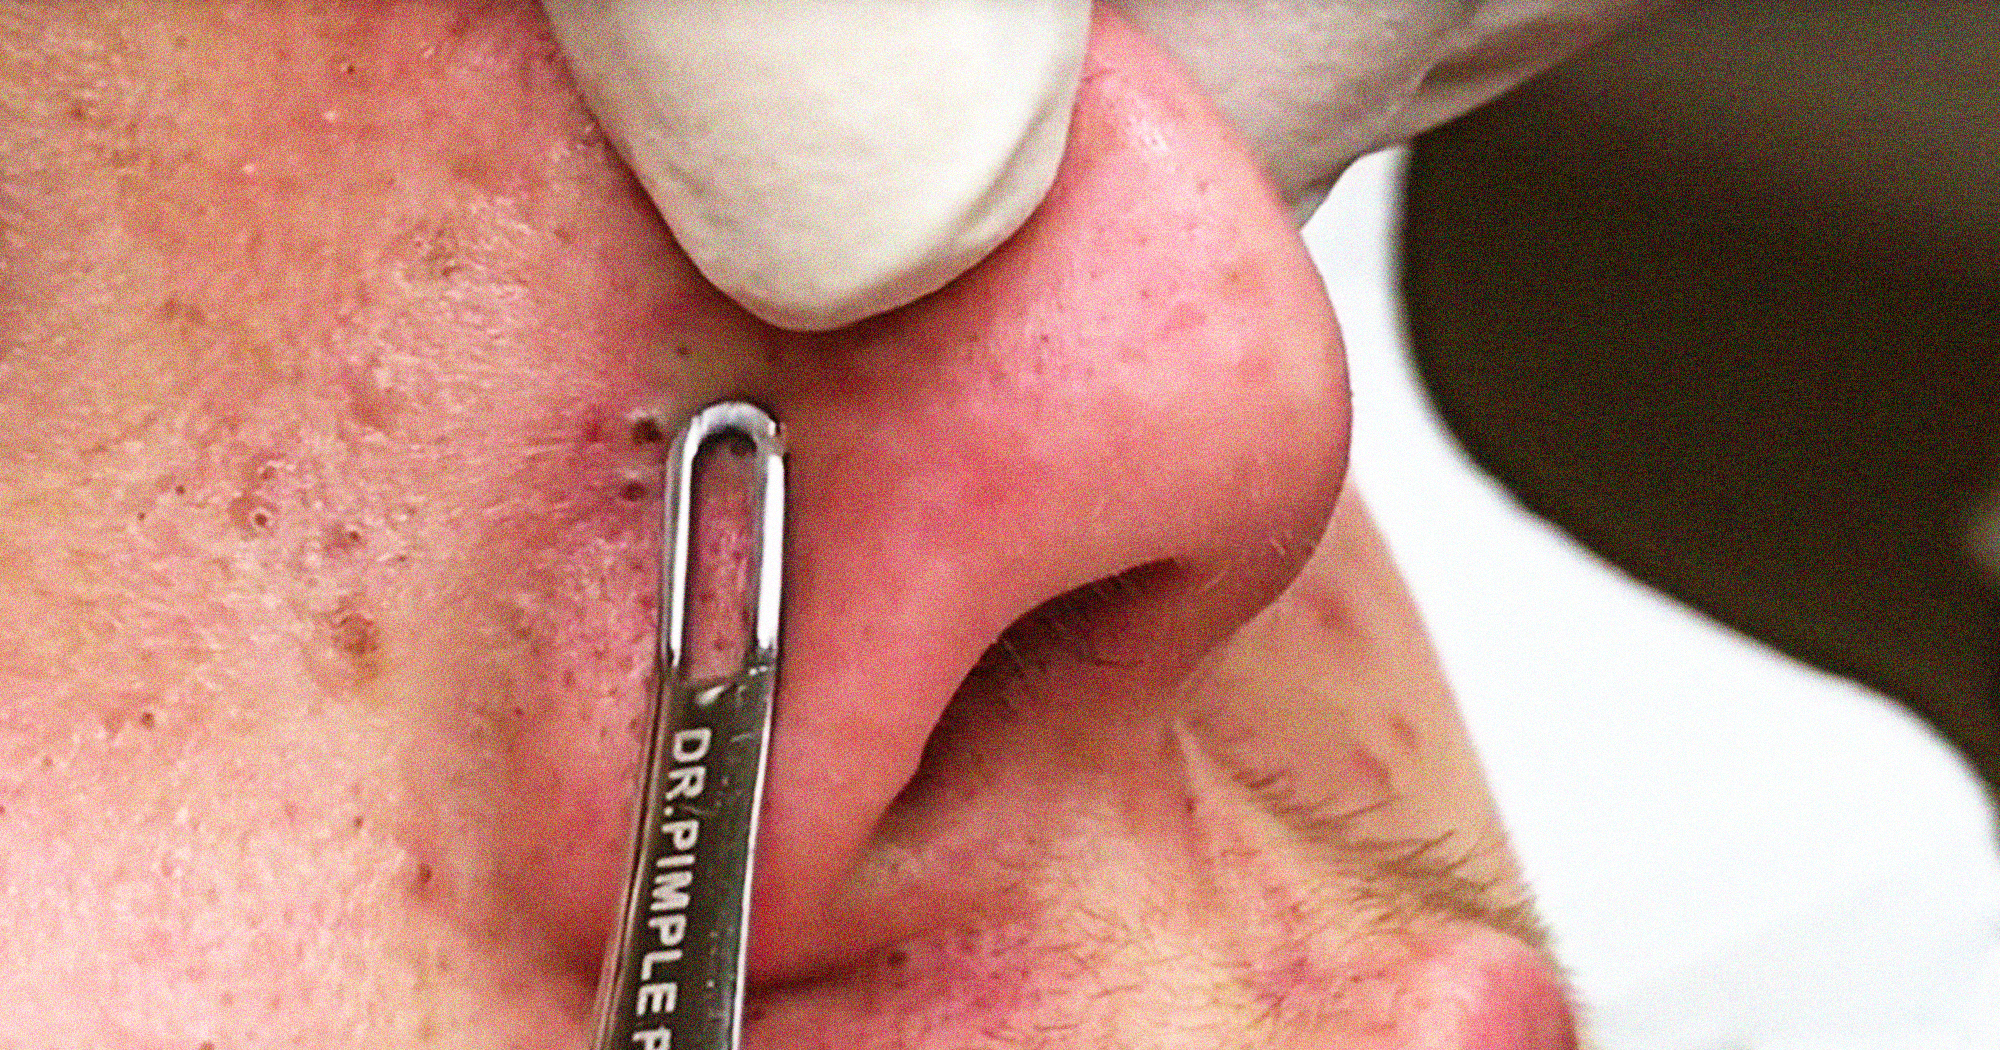 Best Dr Pimple Popper Blackhead Extraction Videos Ever